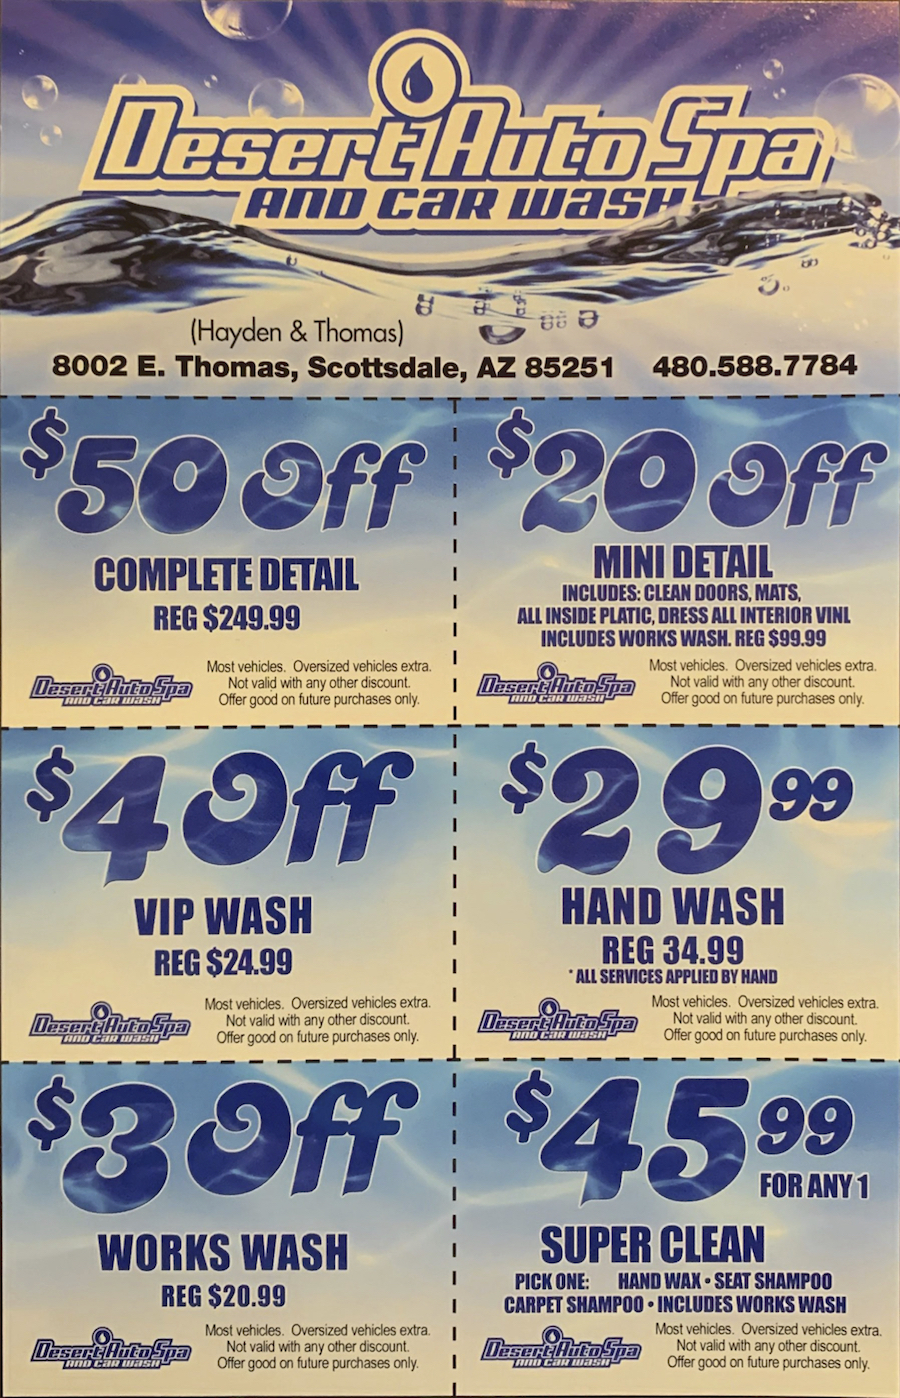 Auto Spa And Car Wash Deals And Coupons In Scottsdale Desert Auto Spa And Car Wash